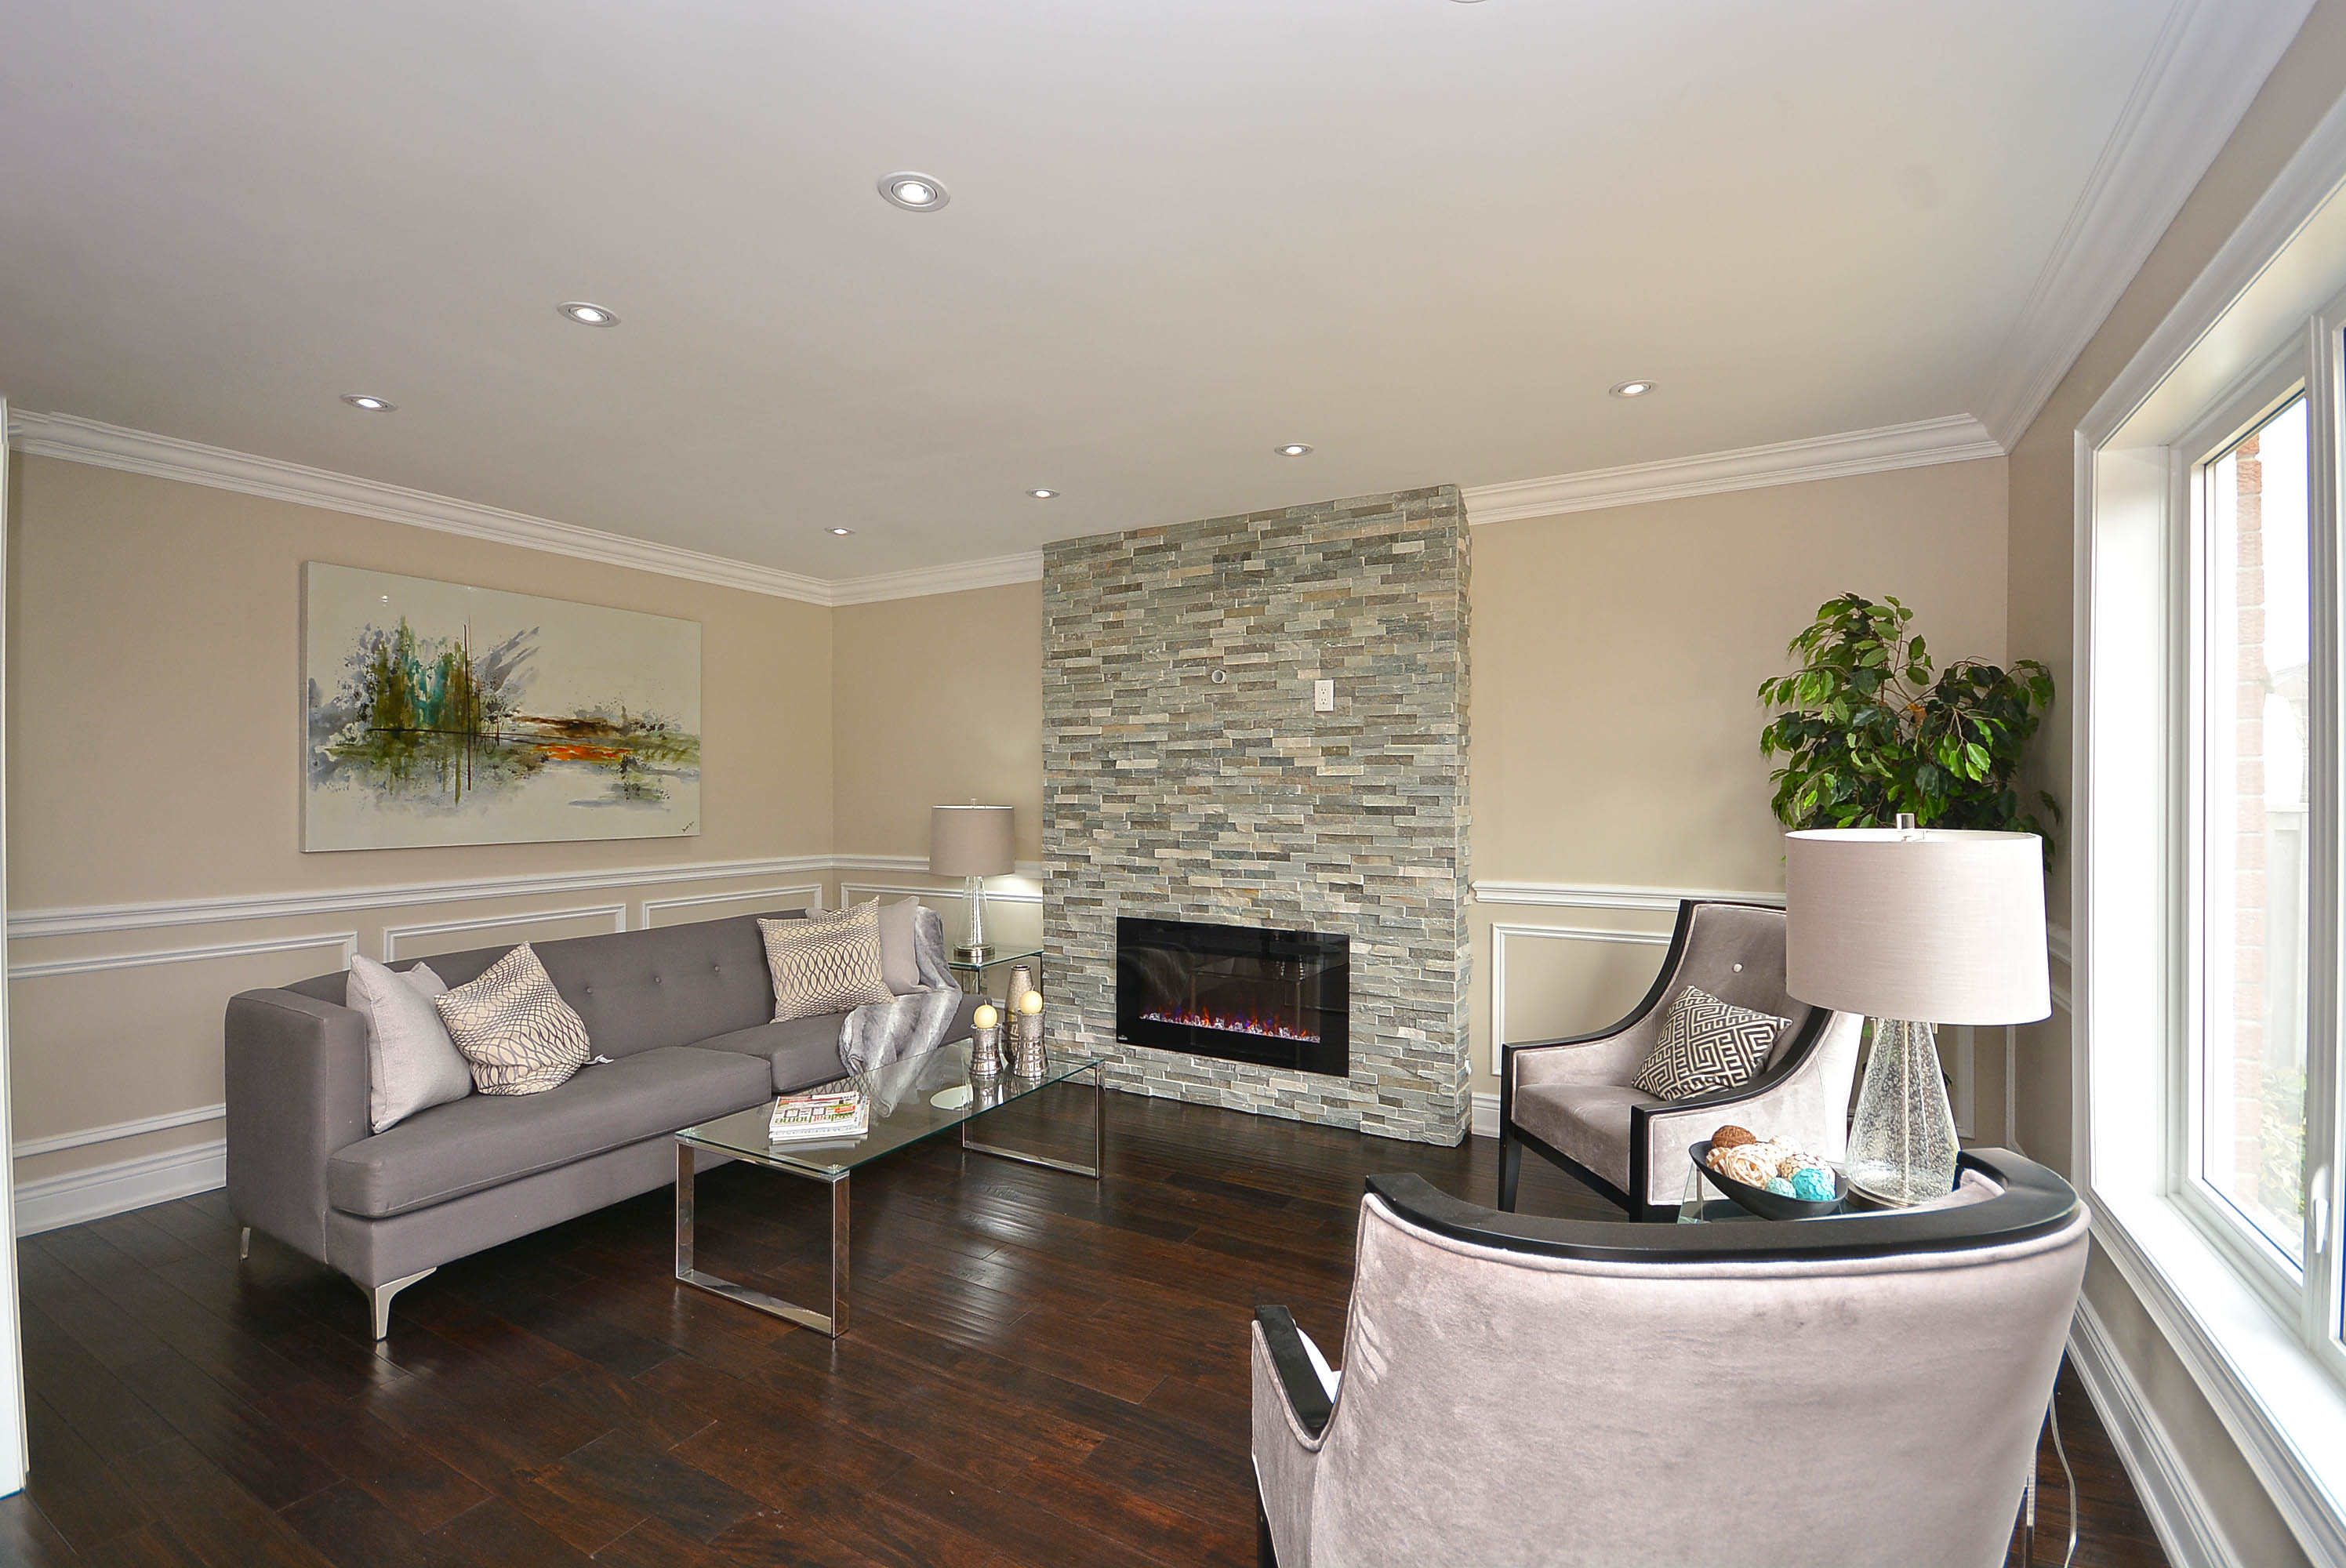 virtual-tour-233002-37   Jms Home Staging & Design - (STAGEJMS ...